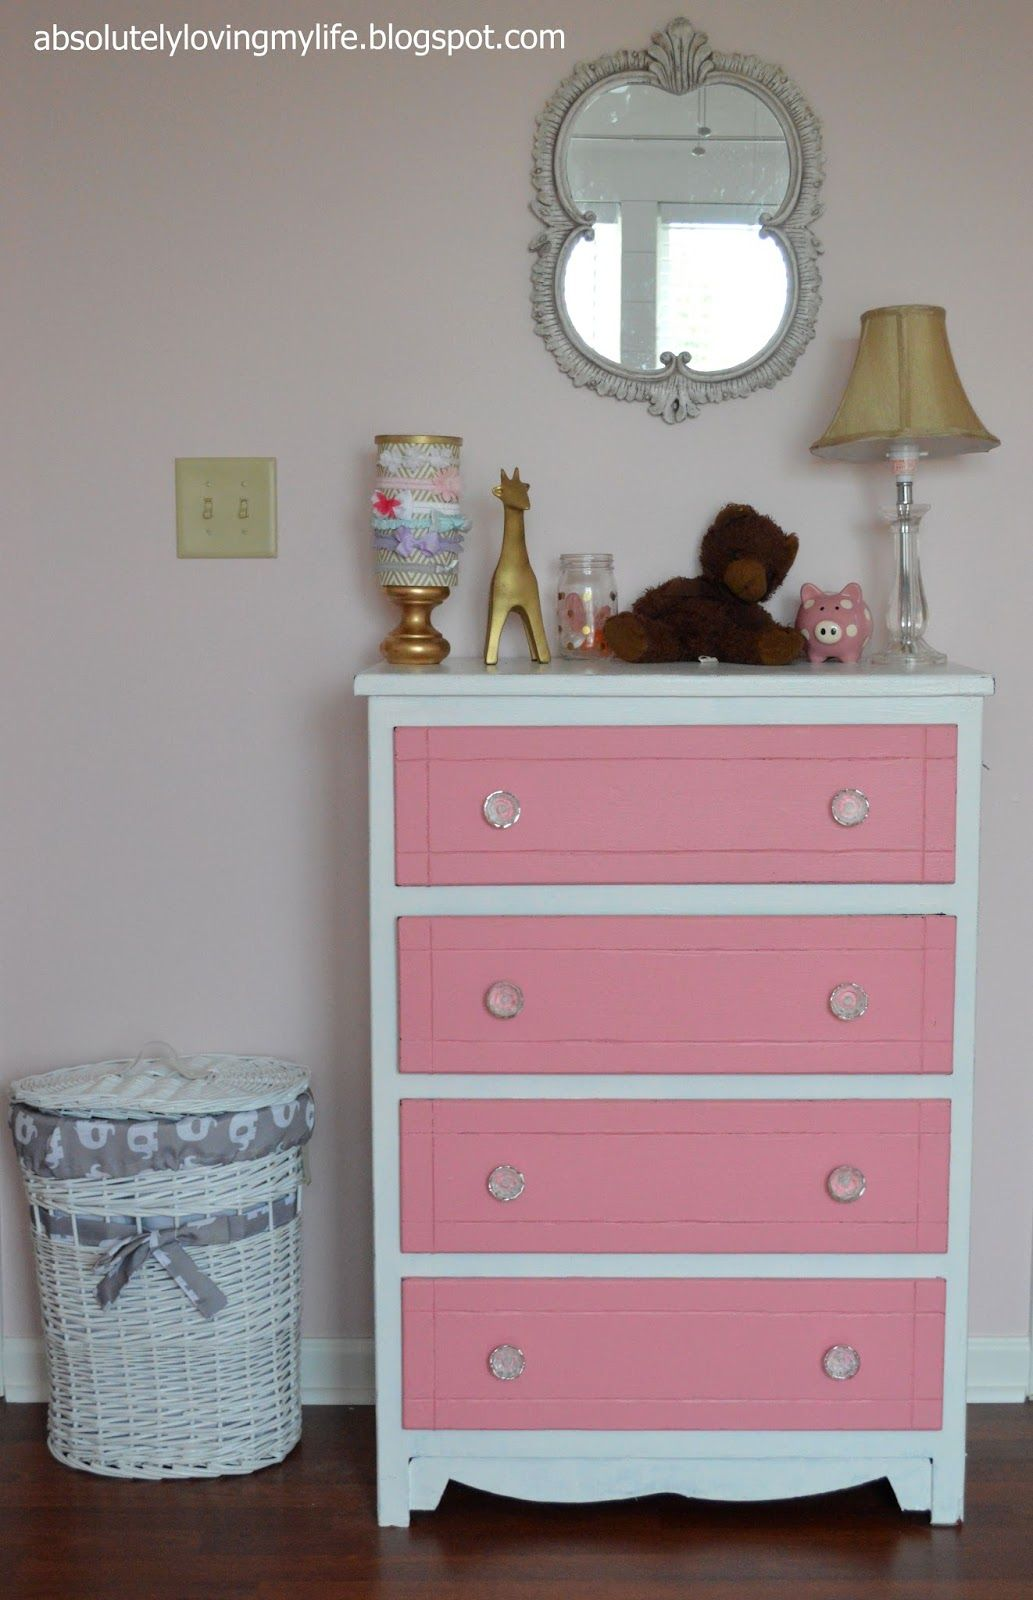 table baby changing after nursery dresser hair girl revamp teasing before